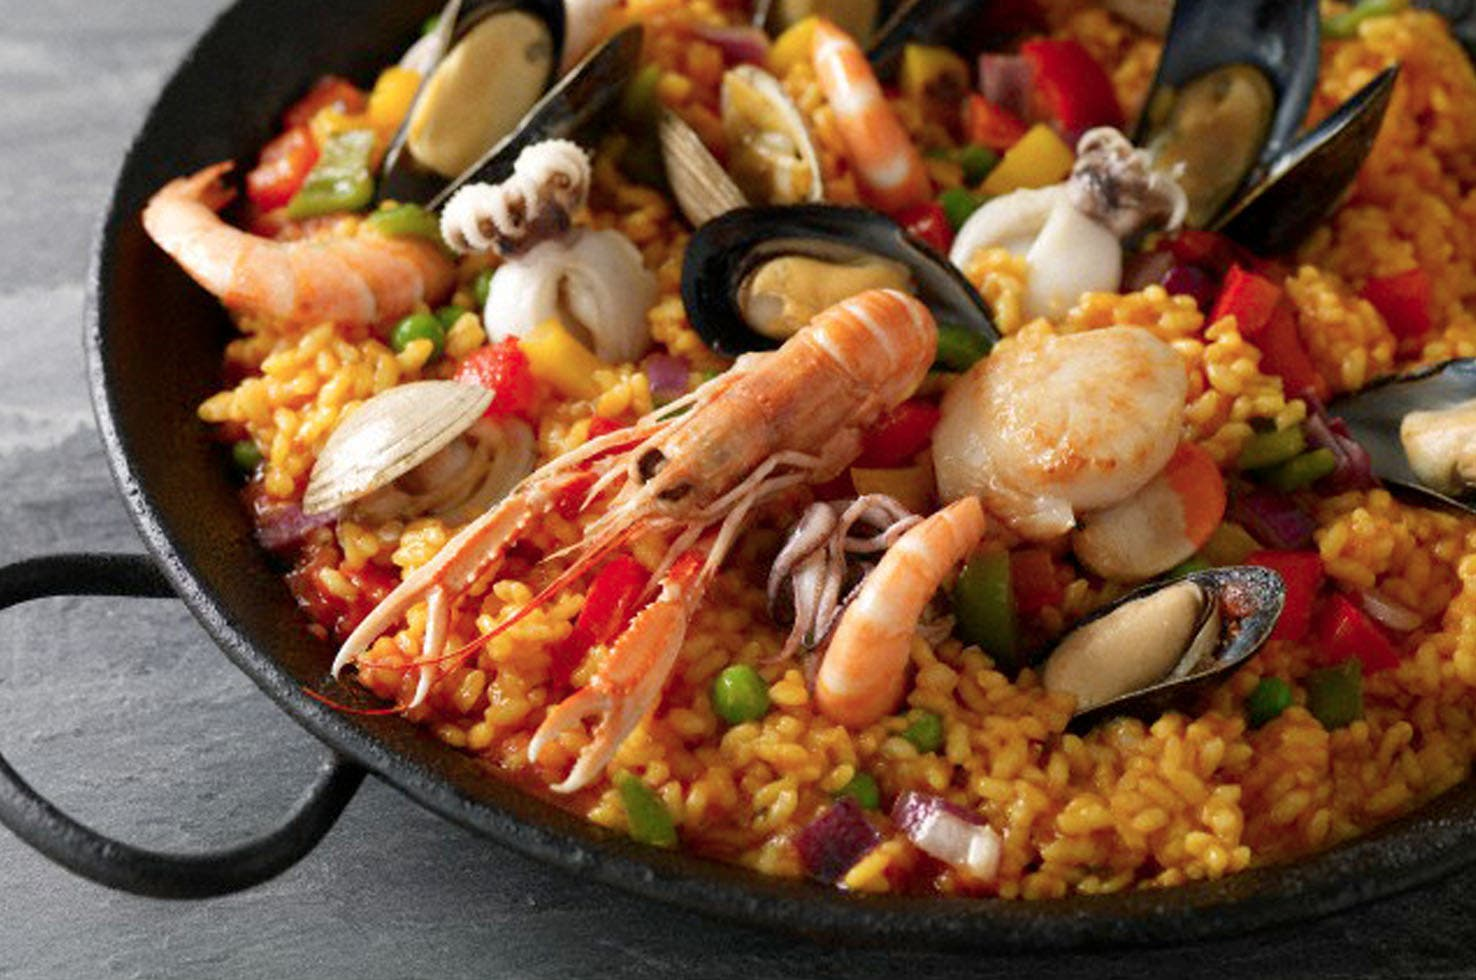 New website 'WikiPaella' to police Spain's favourite rice dish